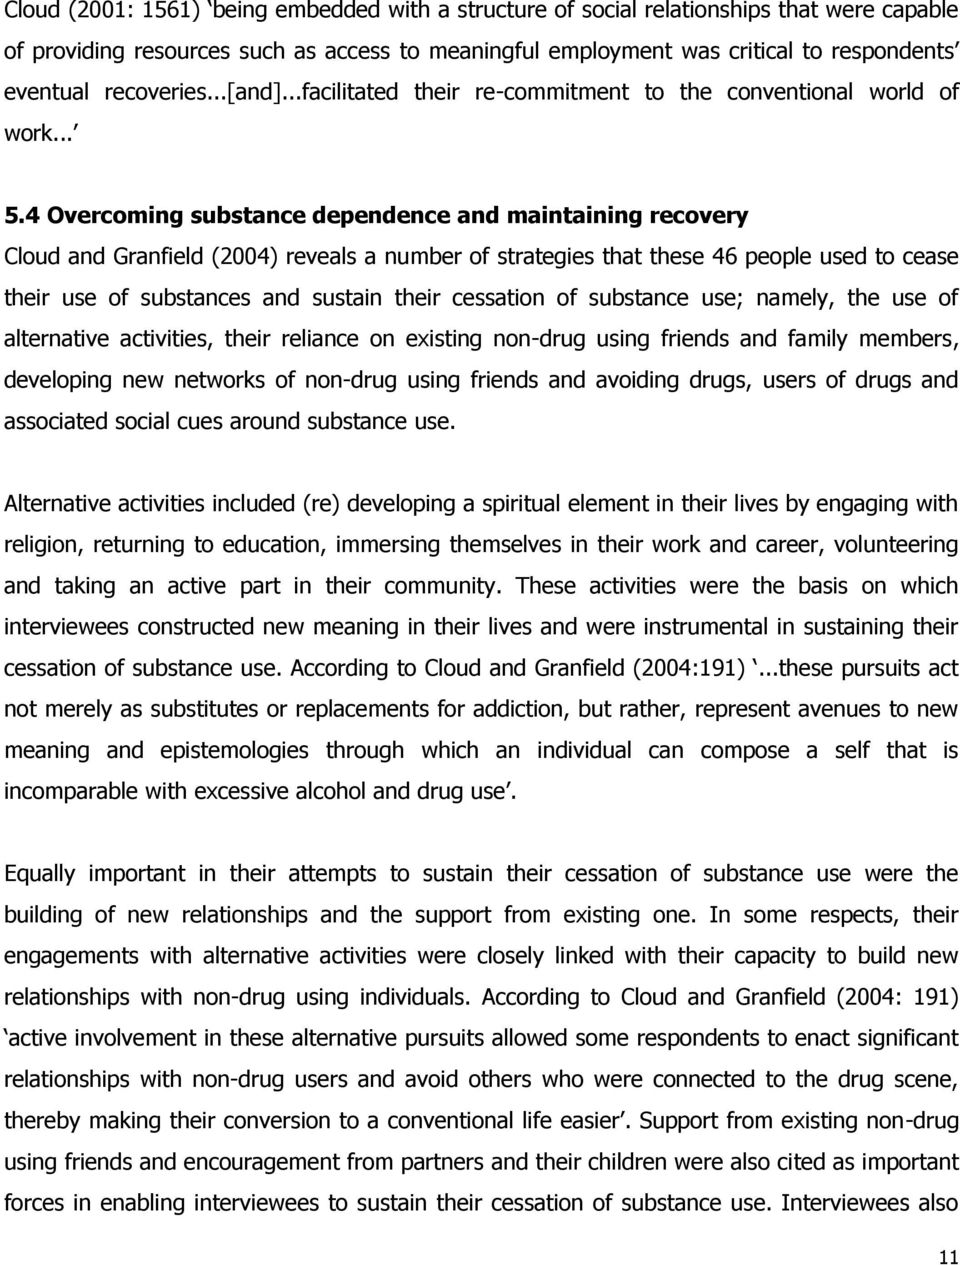 4 Overcoming substance dependence and maintaining recovery Cloud and Granfield (2004) reveals a number of strategies that these 46 people used to cease their use of substances and sustain their